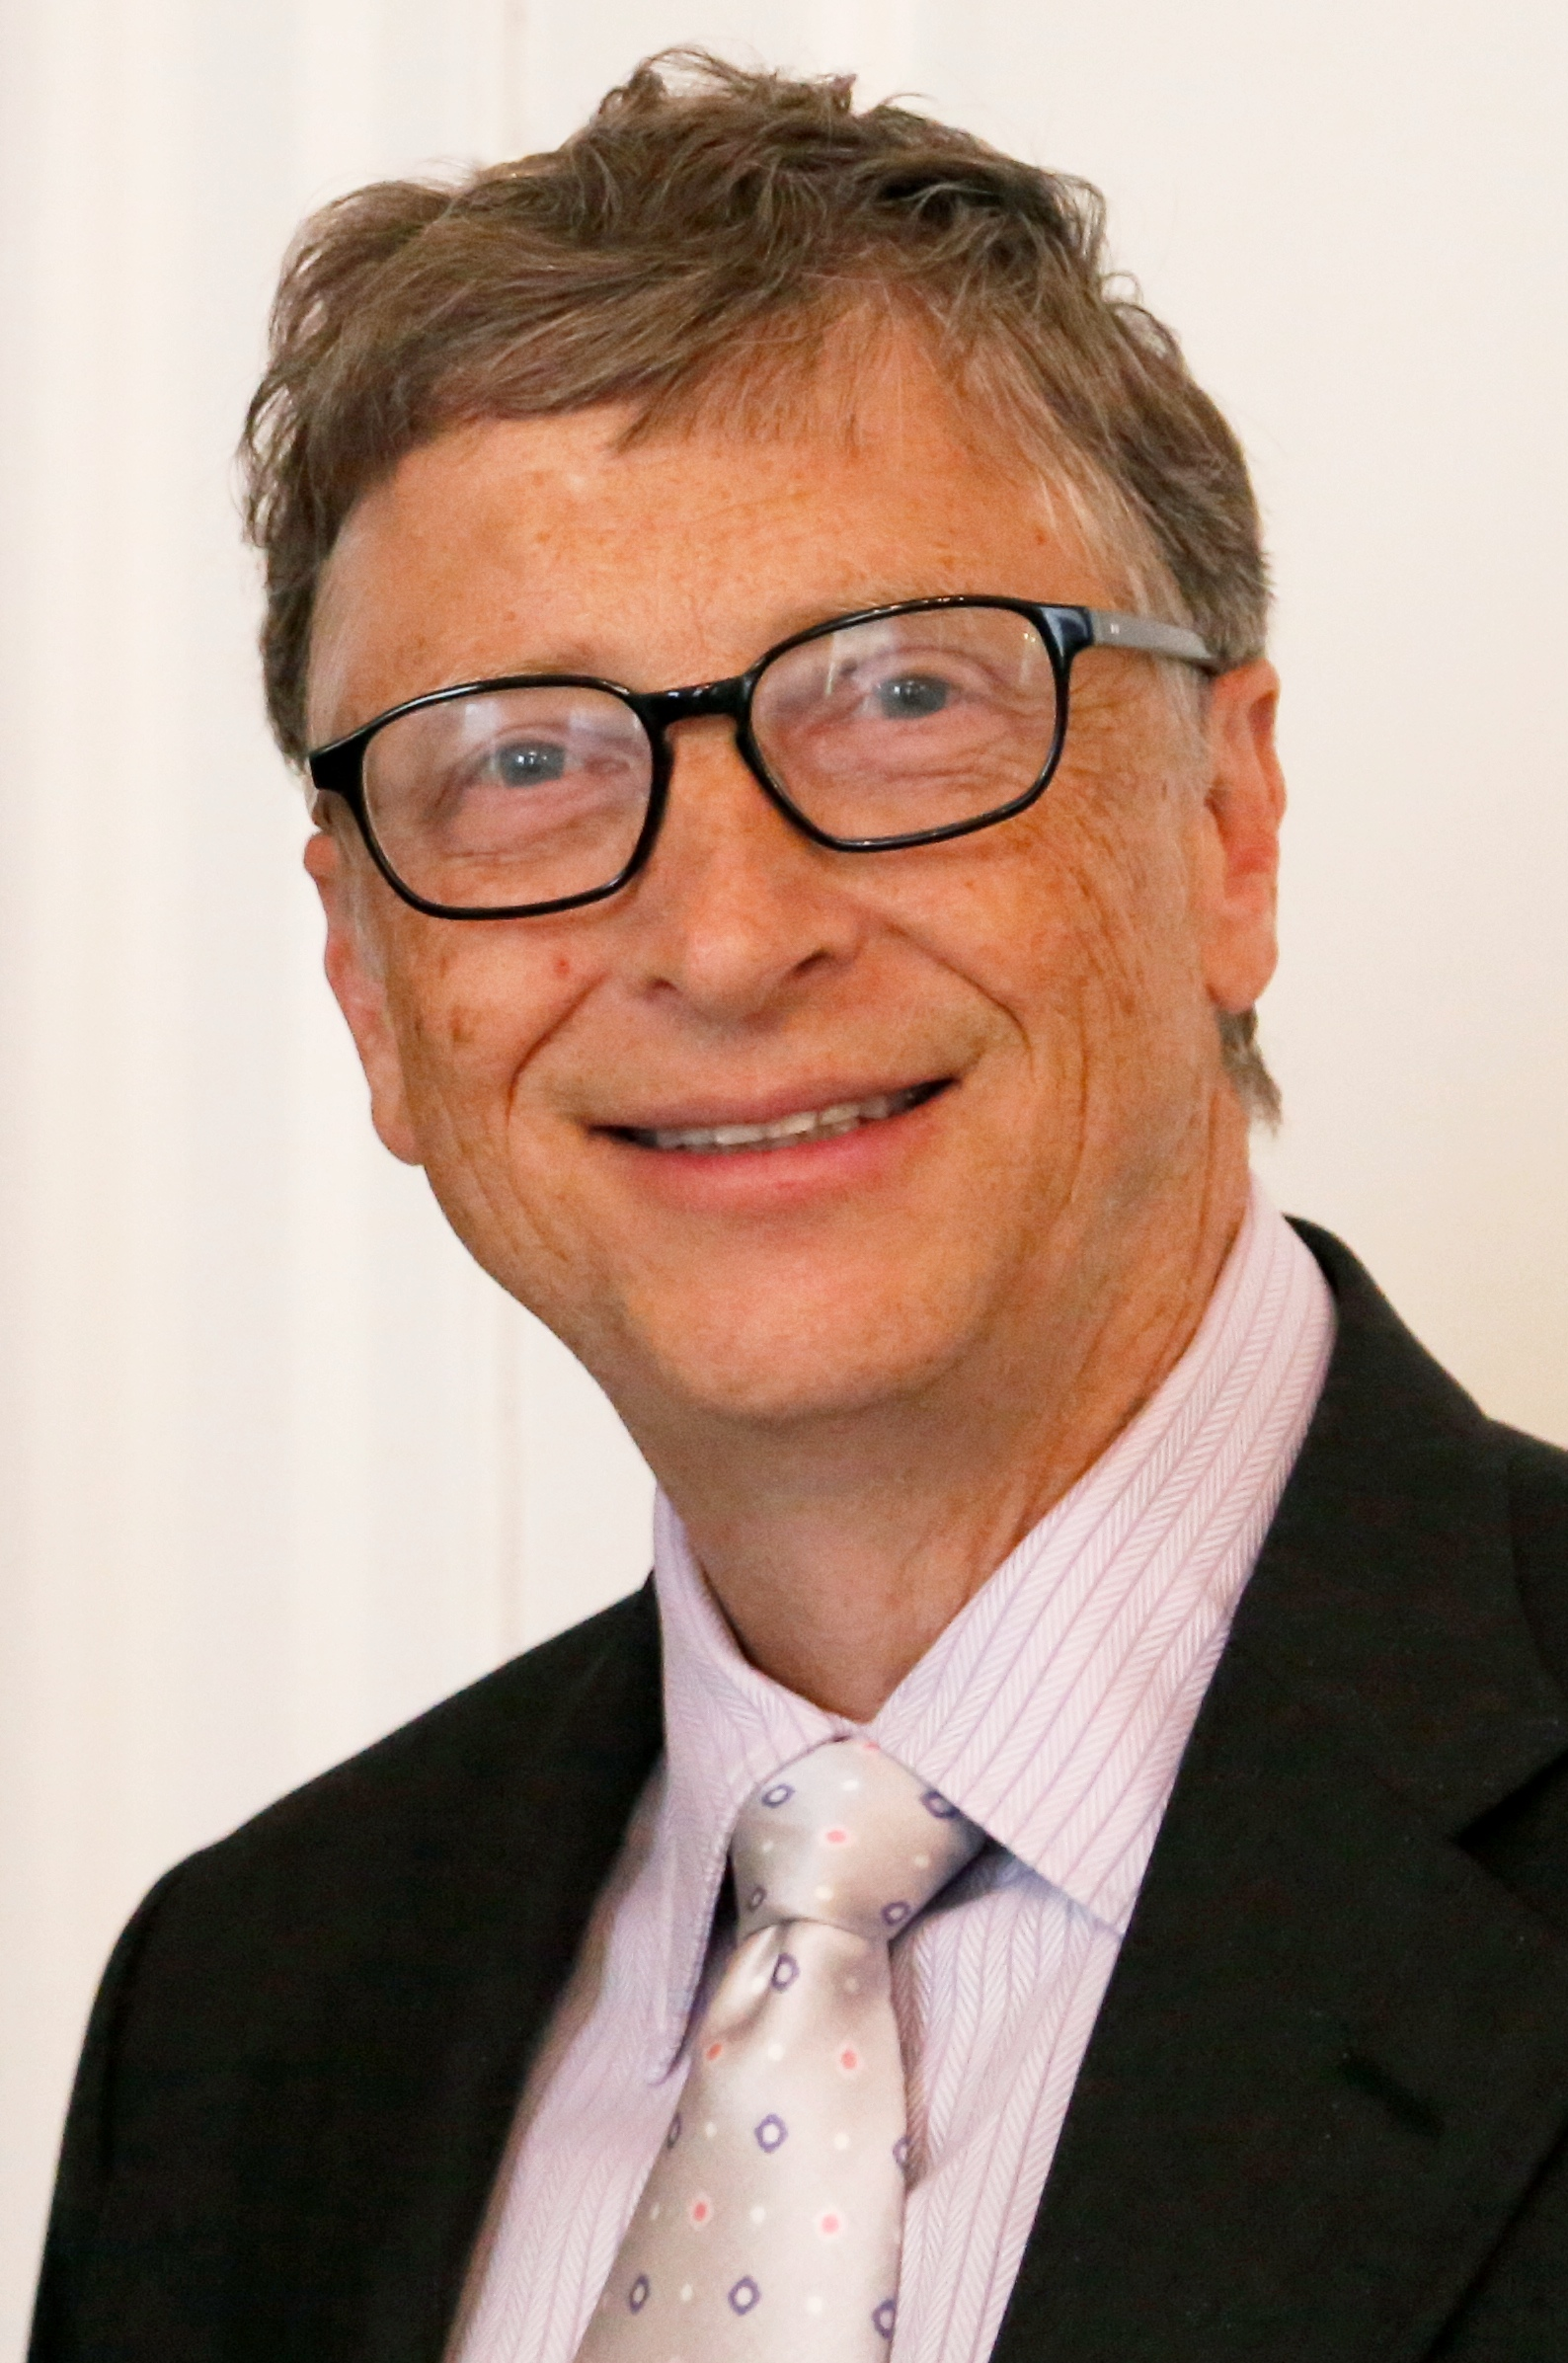 Bill Gate's transactional leadership style